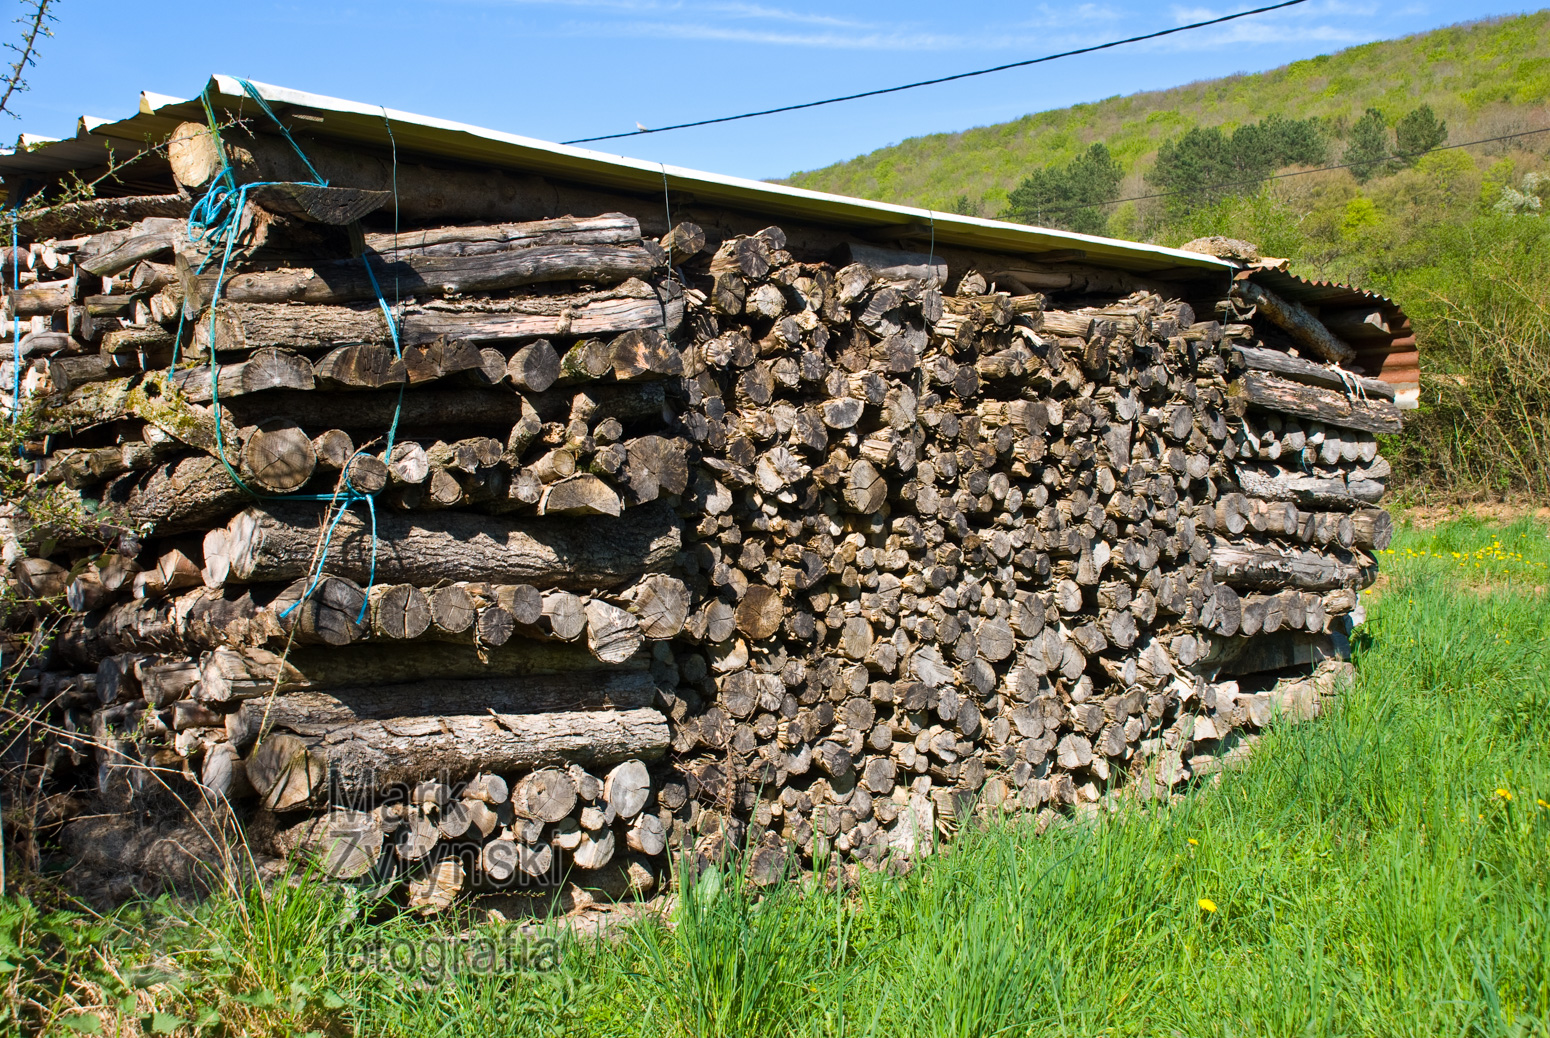 Zytynski-trees-logs-log-piles-5335.jpg